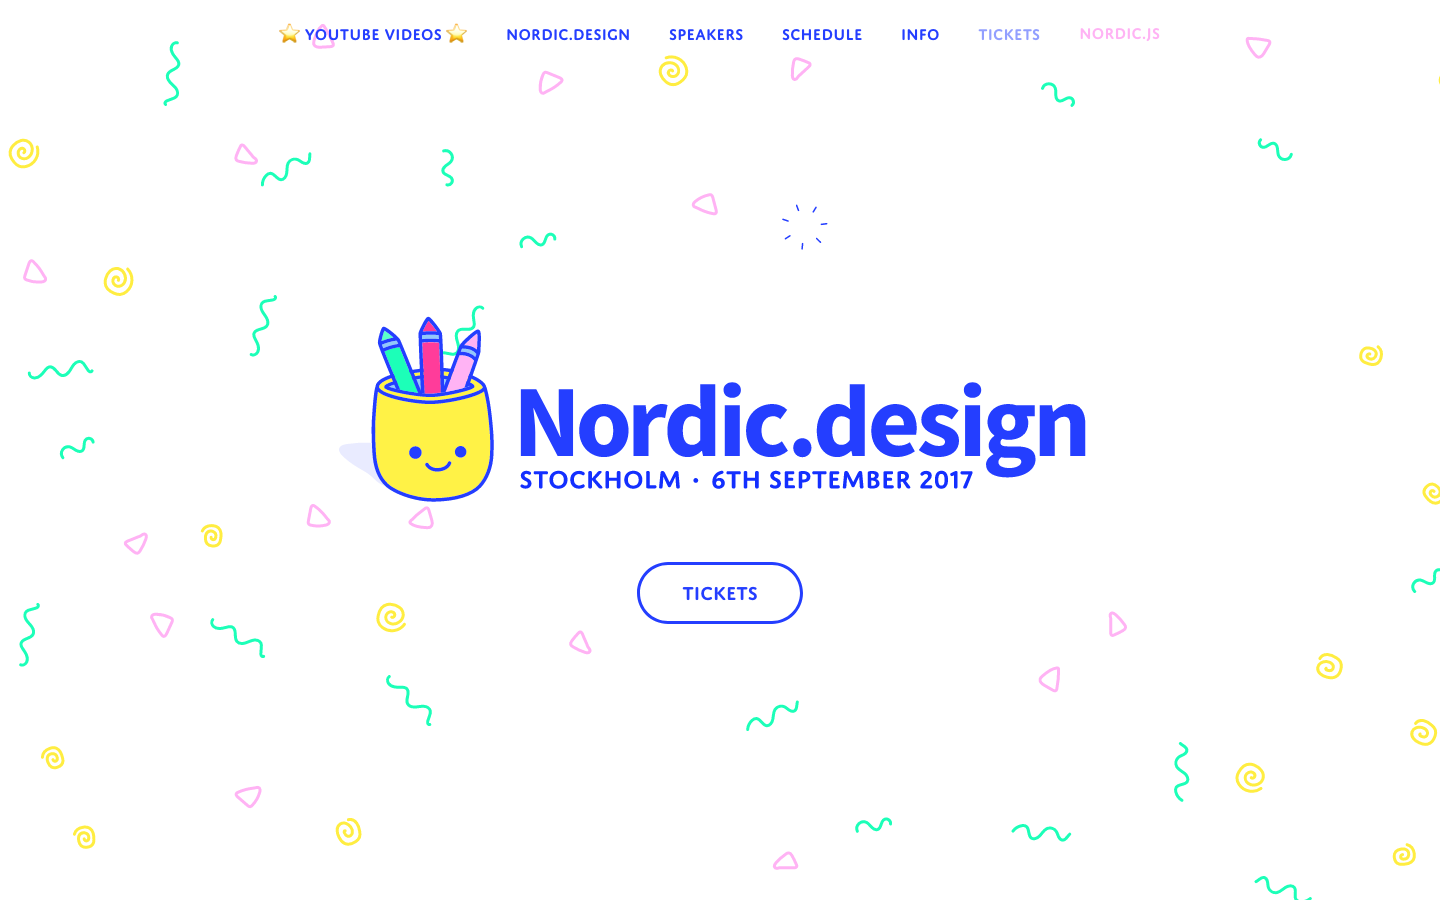 Nordic.design website screenshot